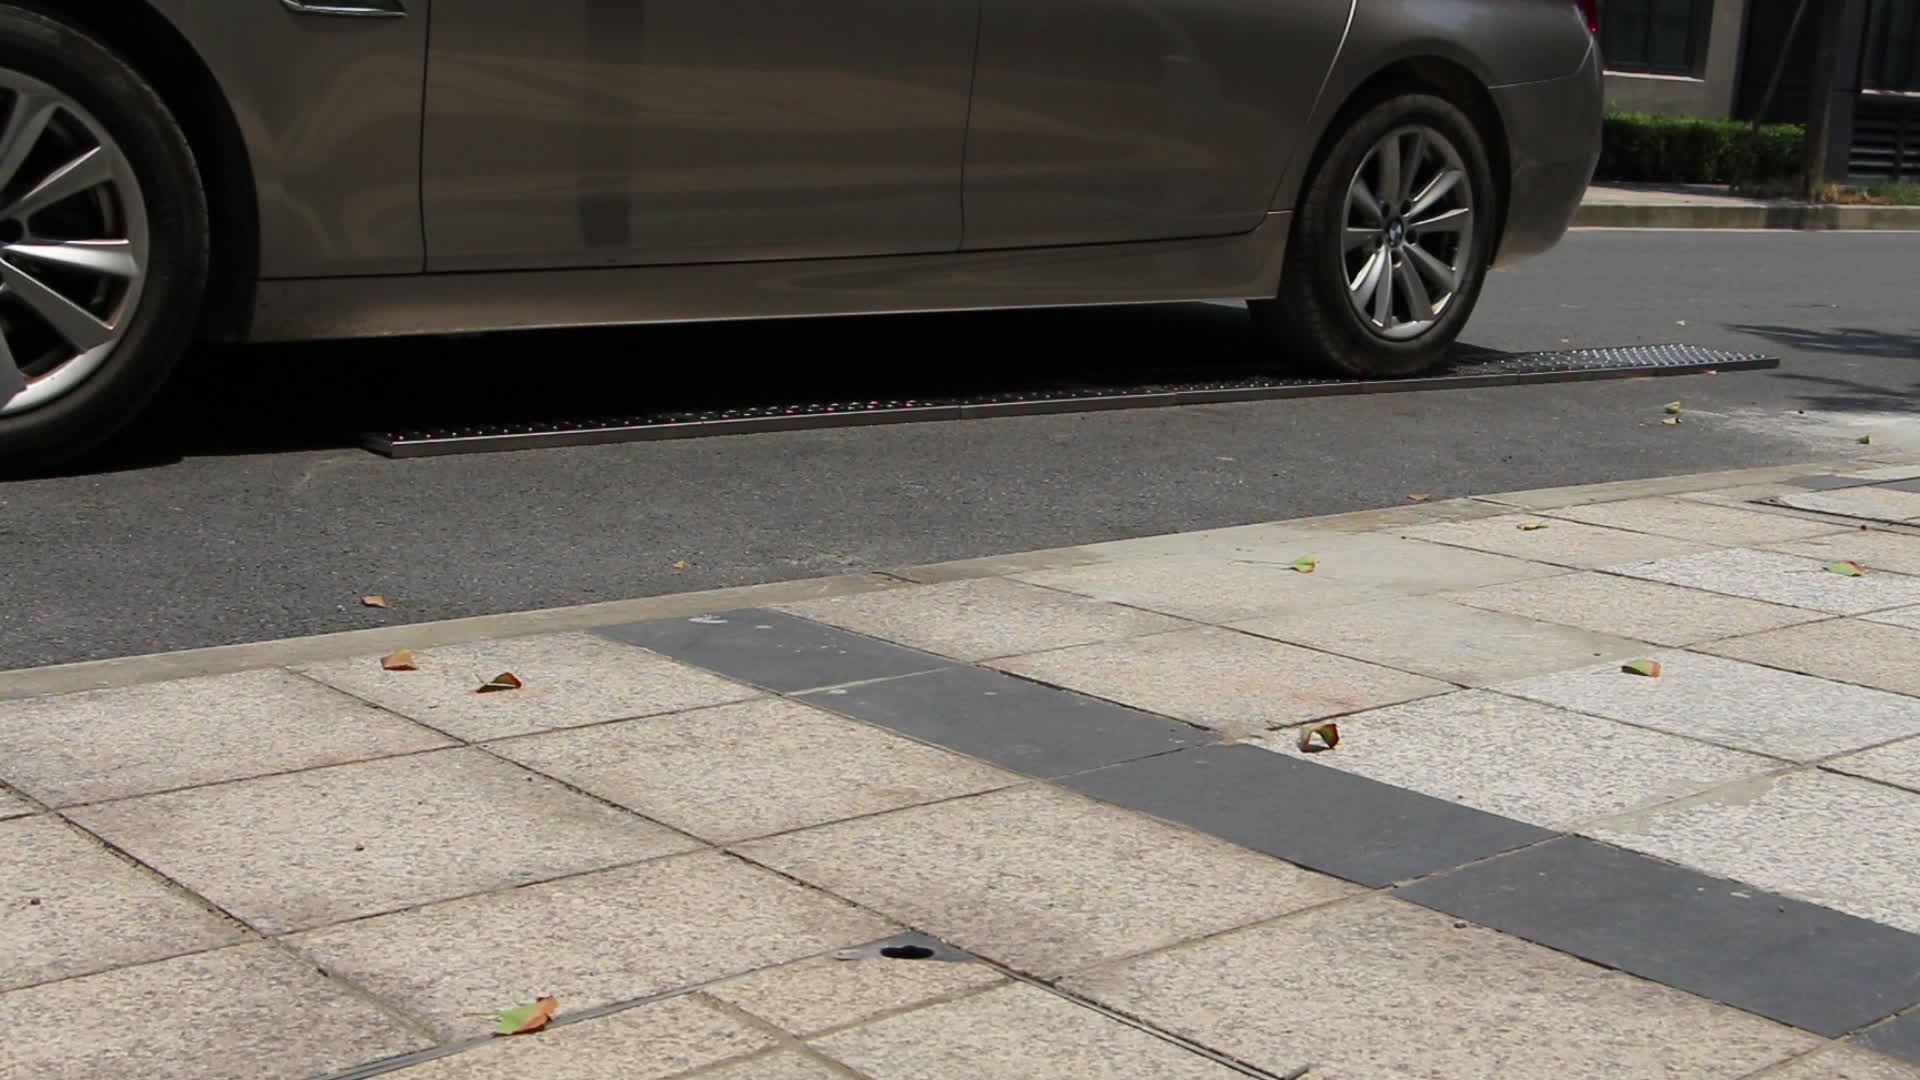 Stainless Steel Prevent Slip Drainage Ditch Cover Driveway Drain